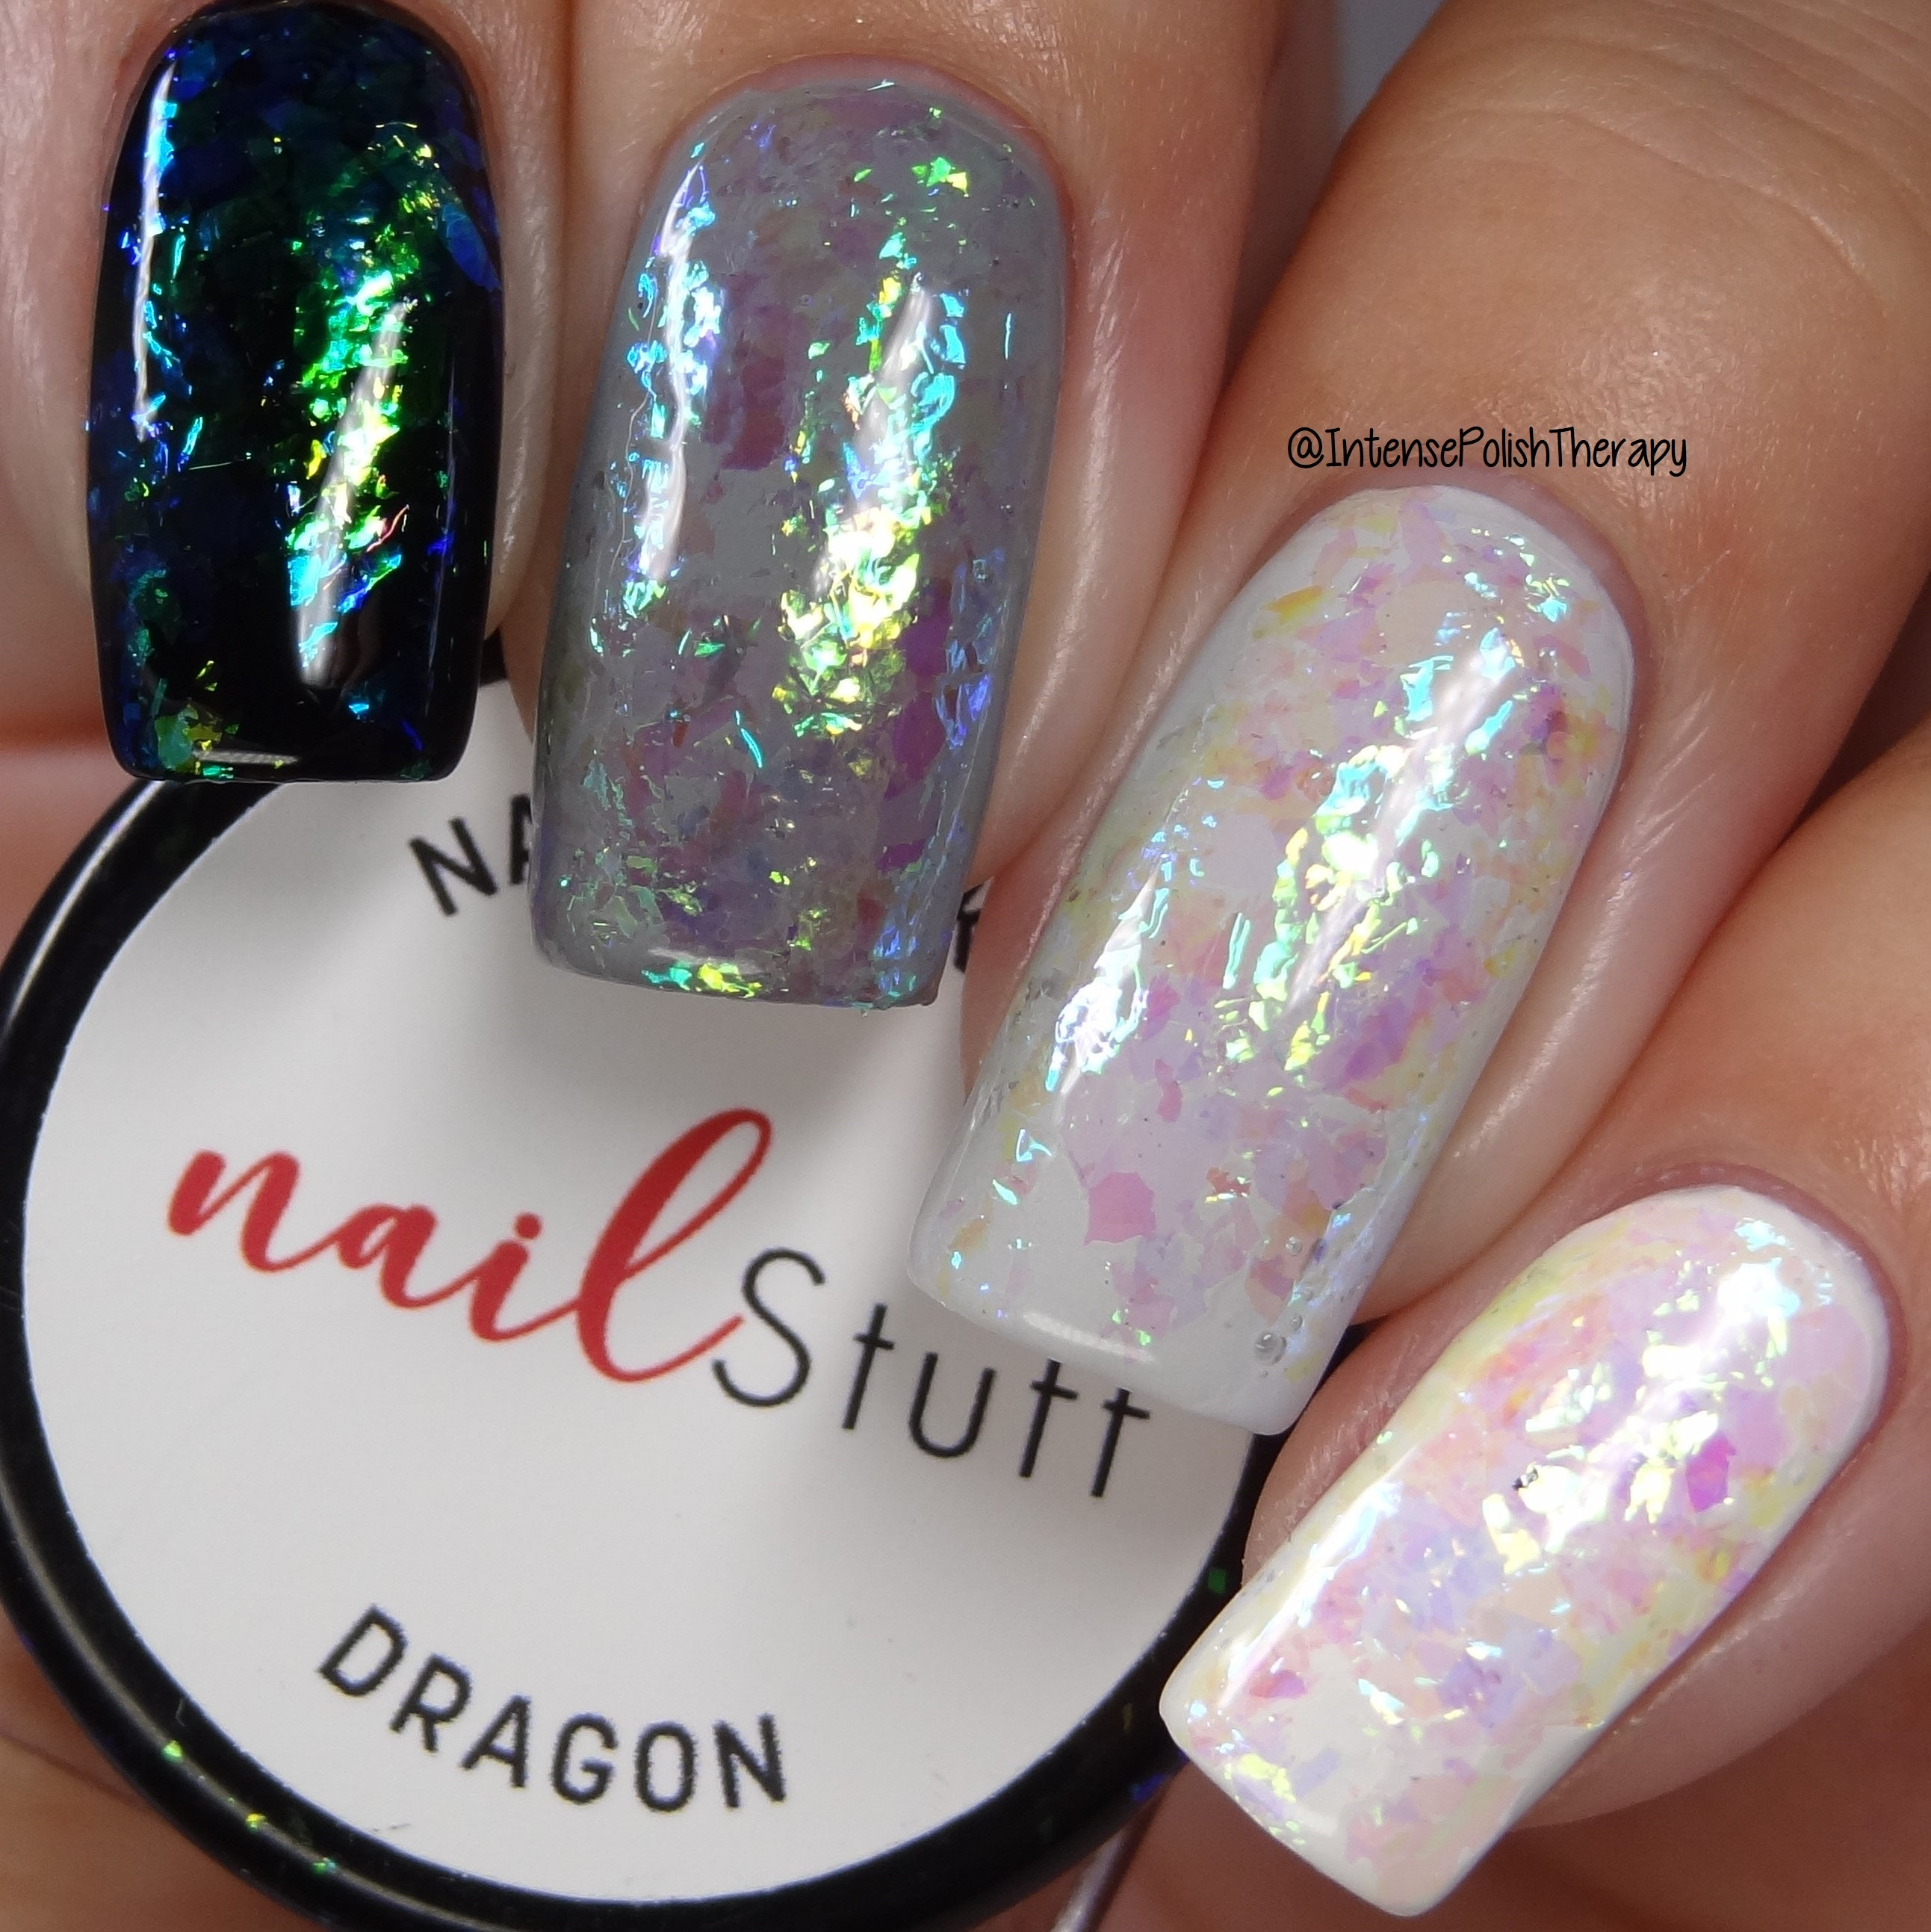 Dragon - Iridescent Nail Flakes